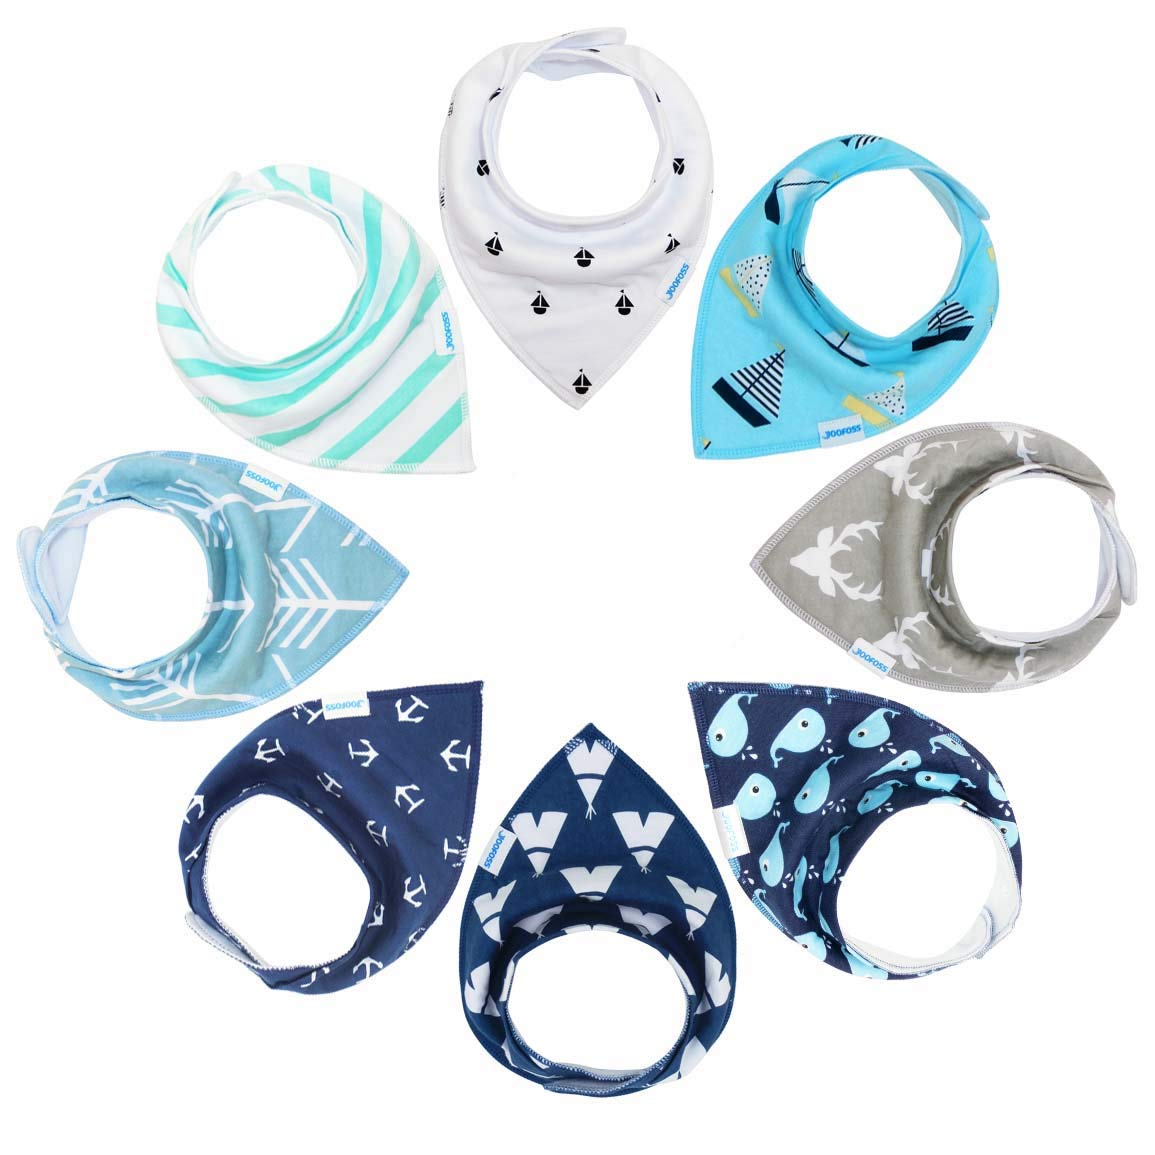 YOOFOSS Baby Bandana Drool Bibs for Teething and Drooling 8 Pack Soft and Absorbent for Boys & Girls BB9001